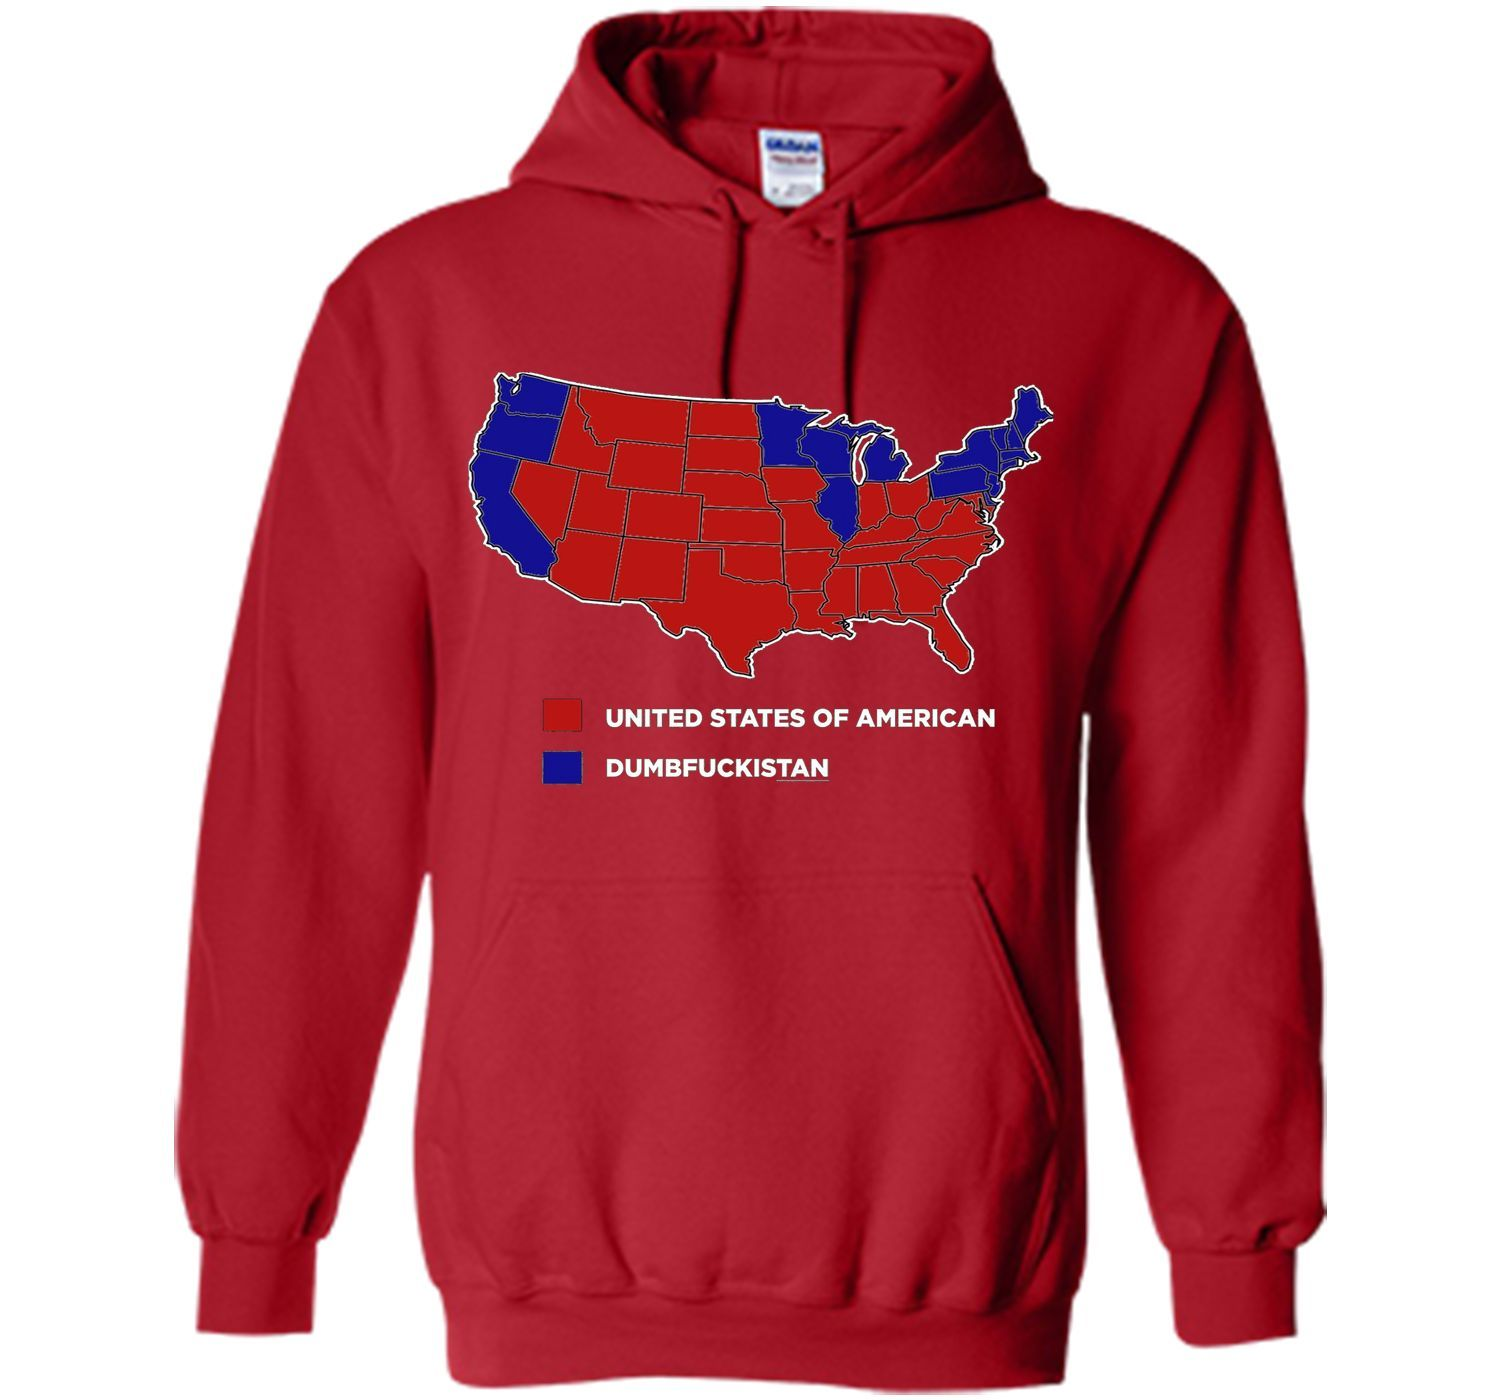 Dumbfuckistan T Shirt United State Of America Cool Shirt Pullover